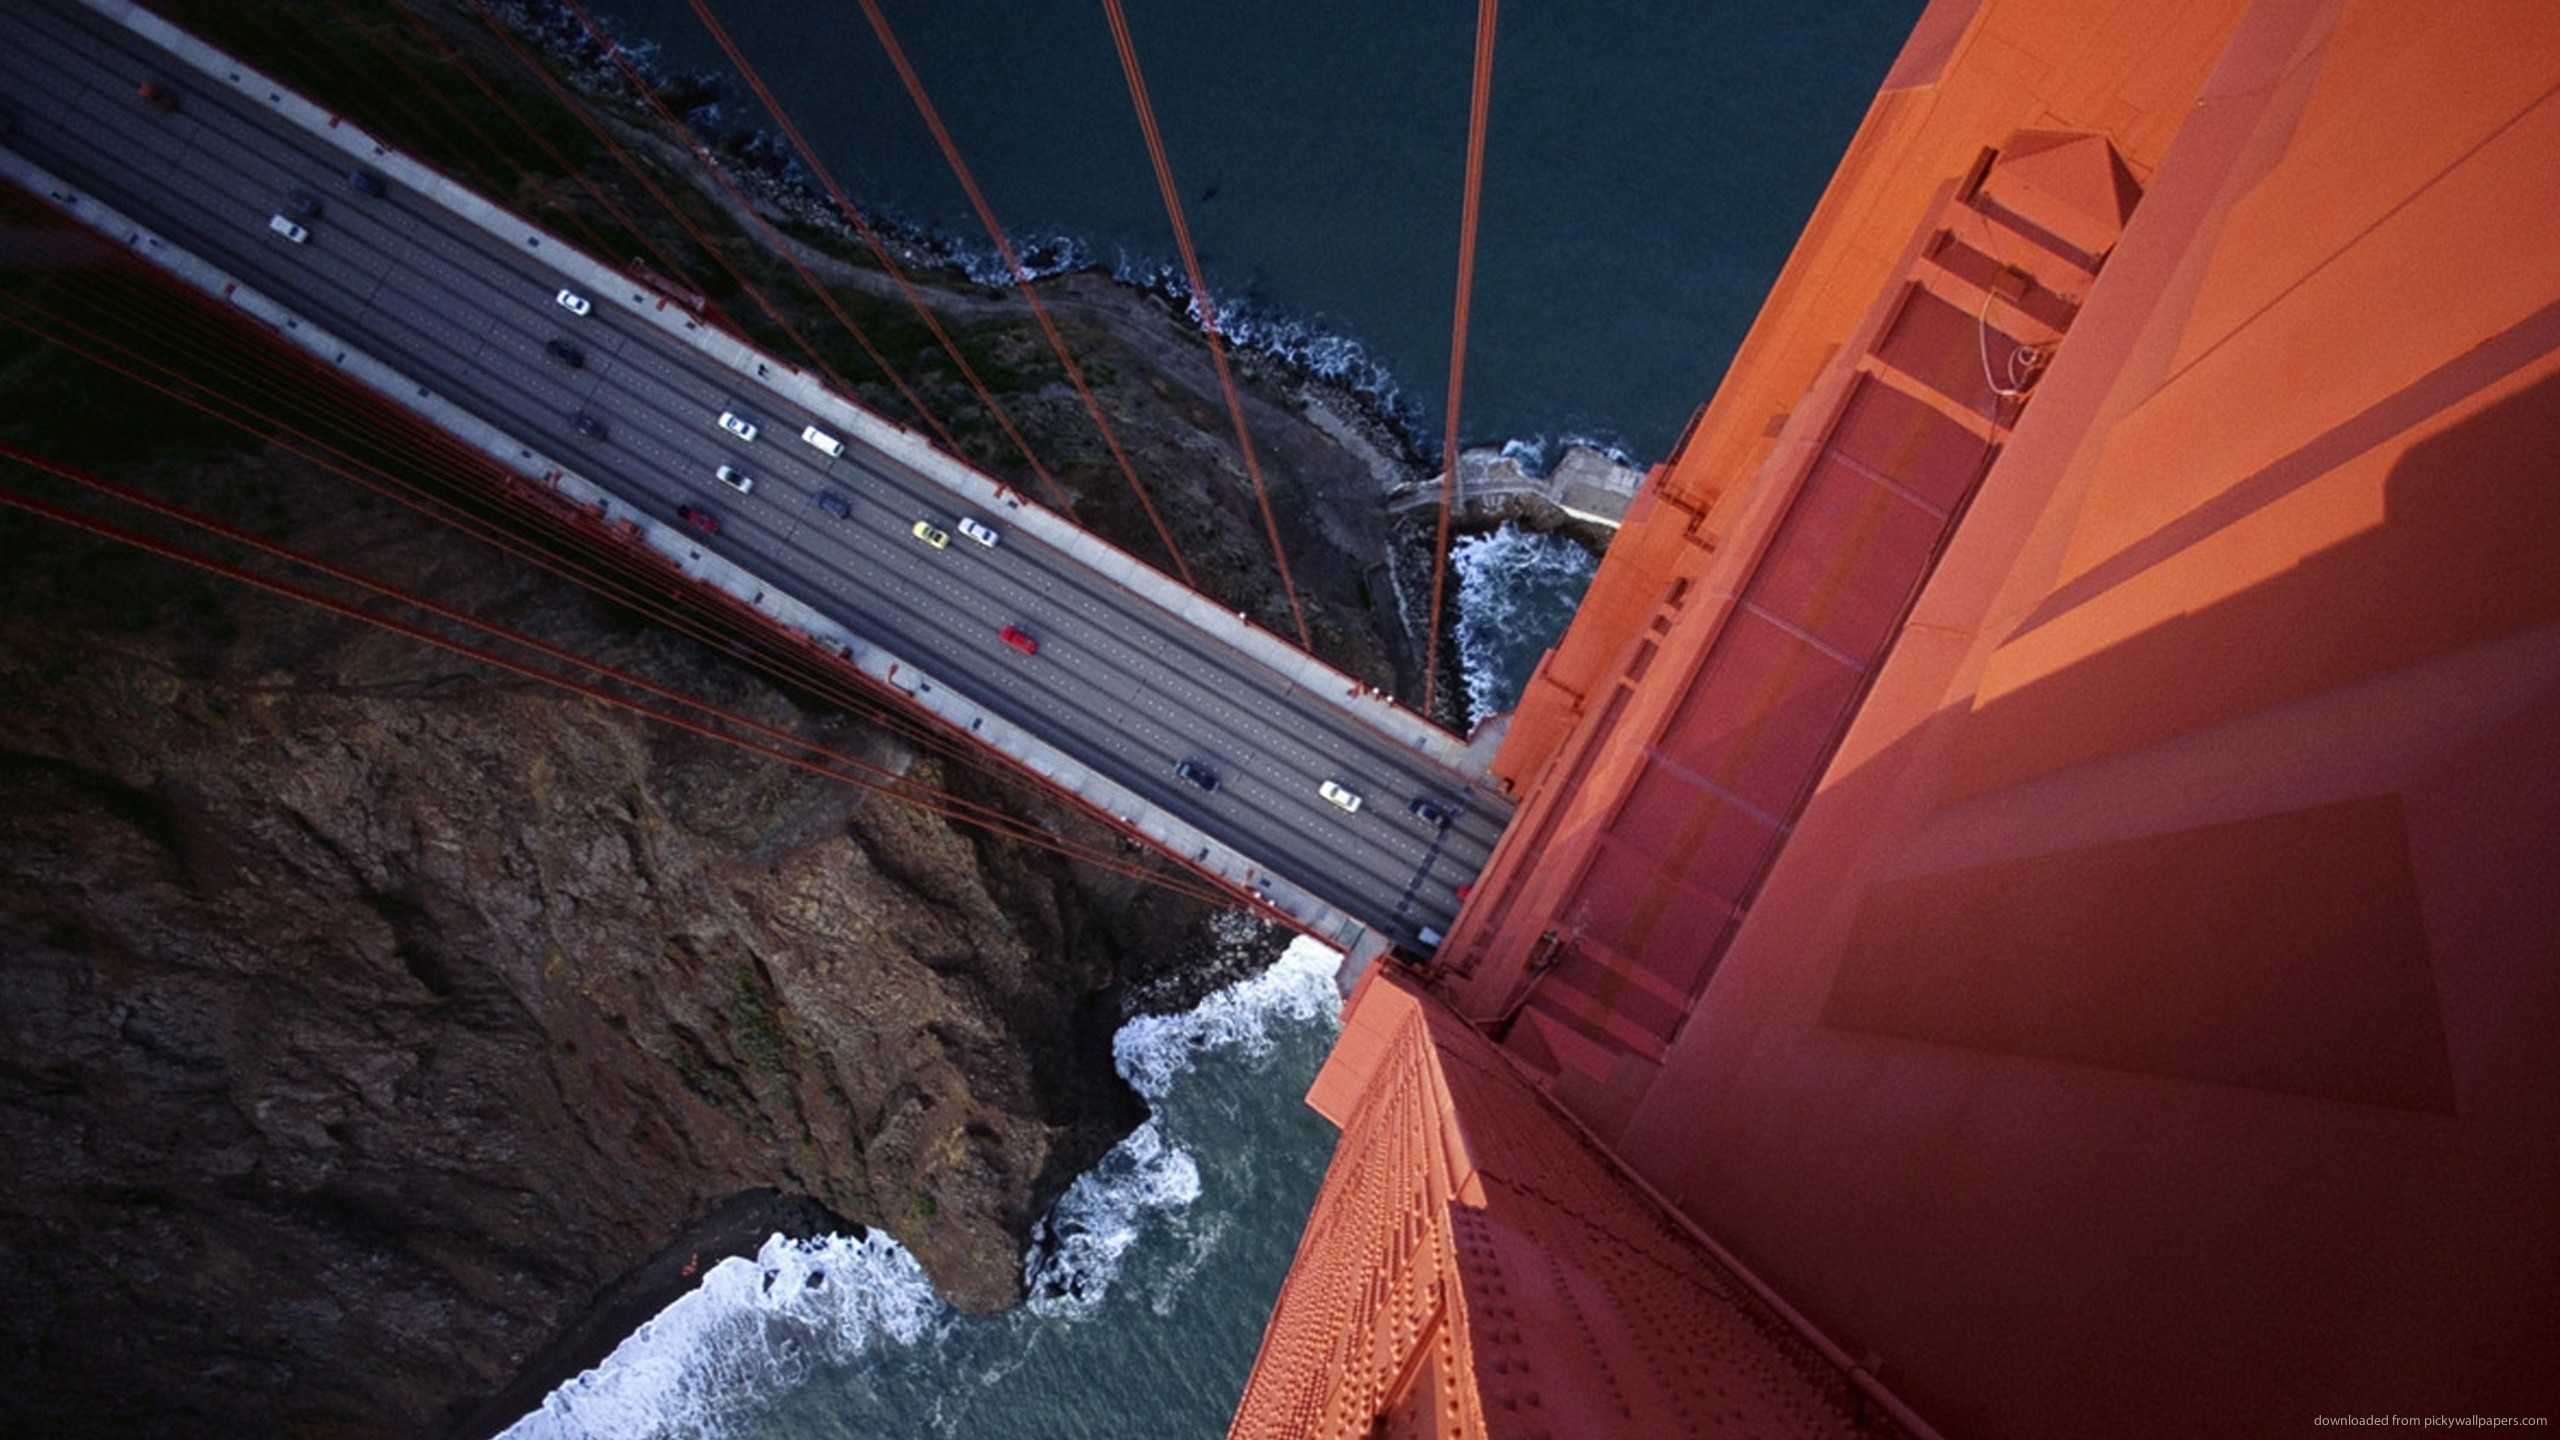 2560x1440 Golden Gate Bridge Shot From The Top for